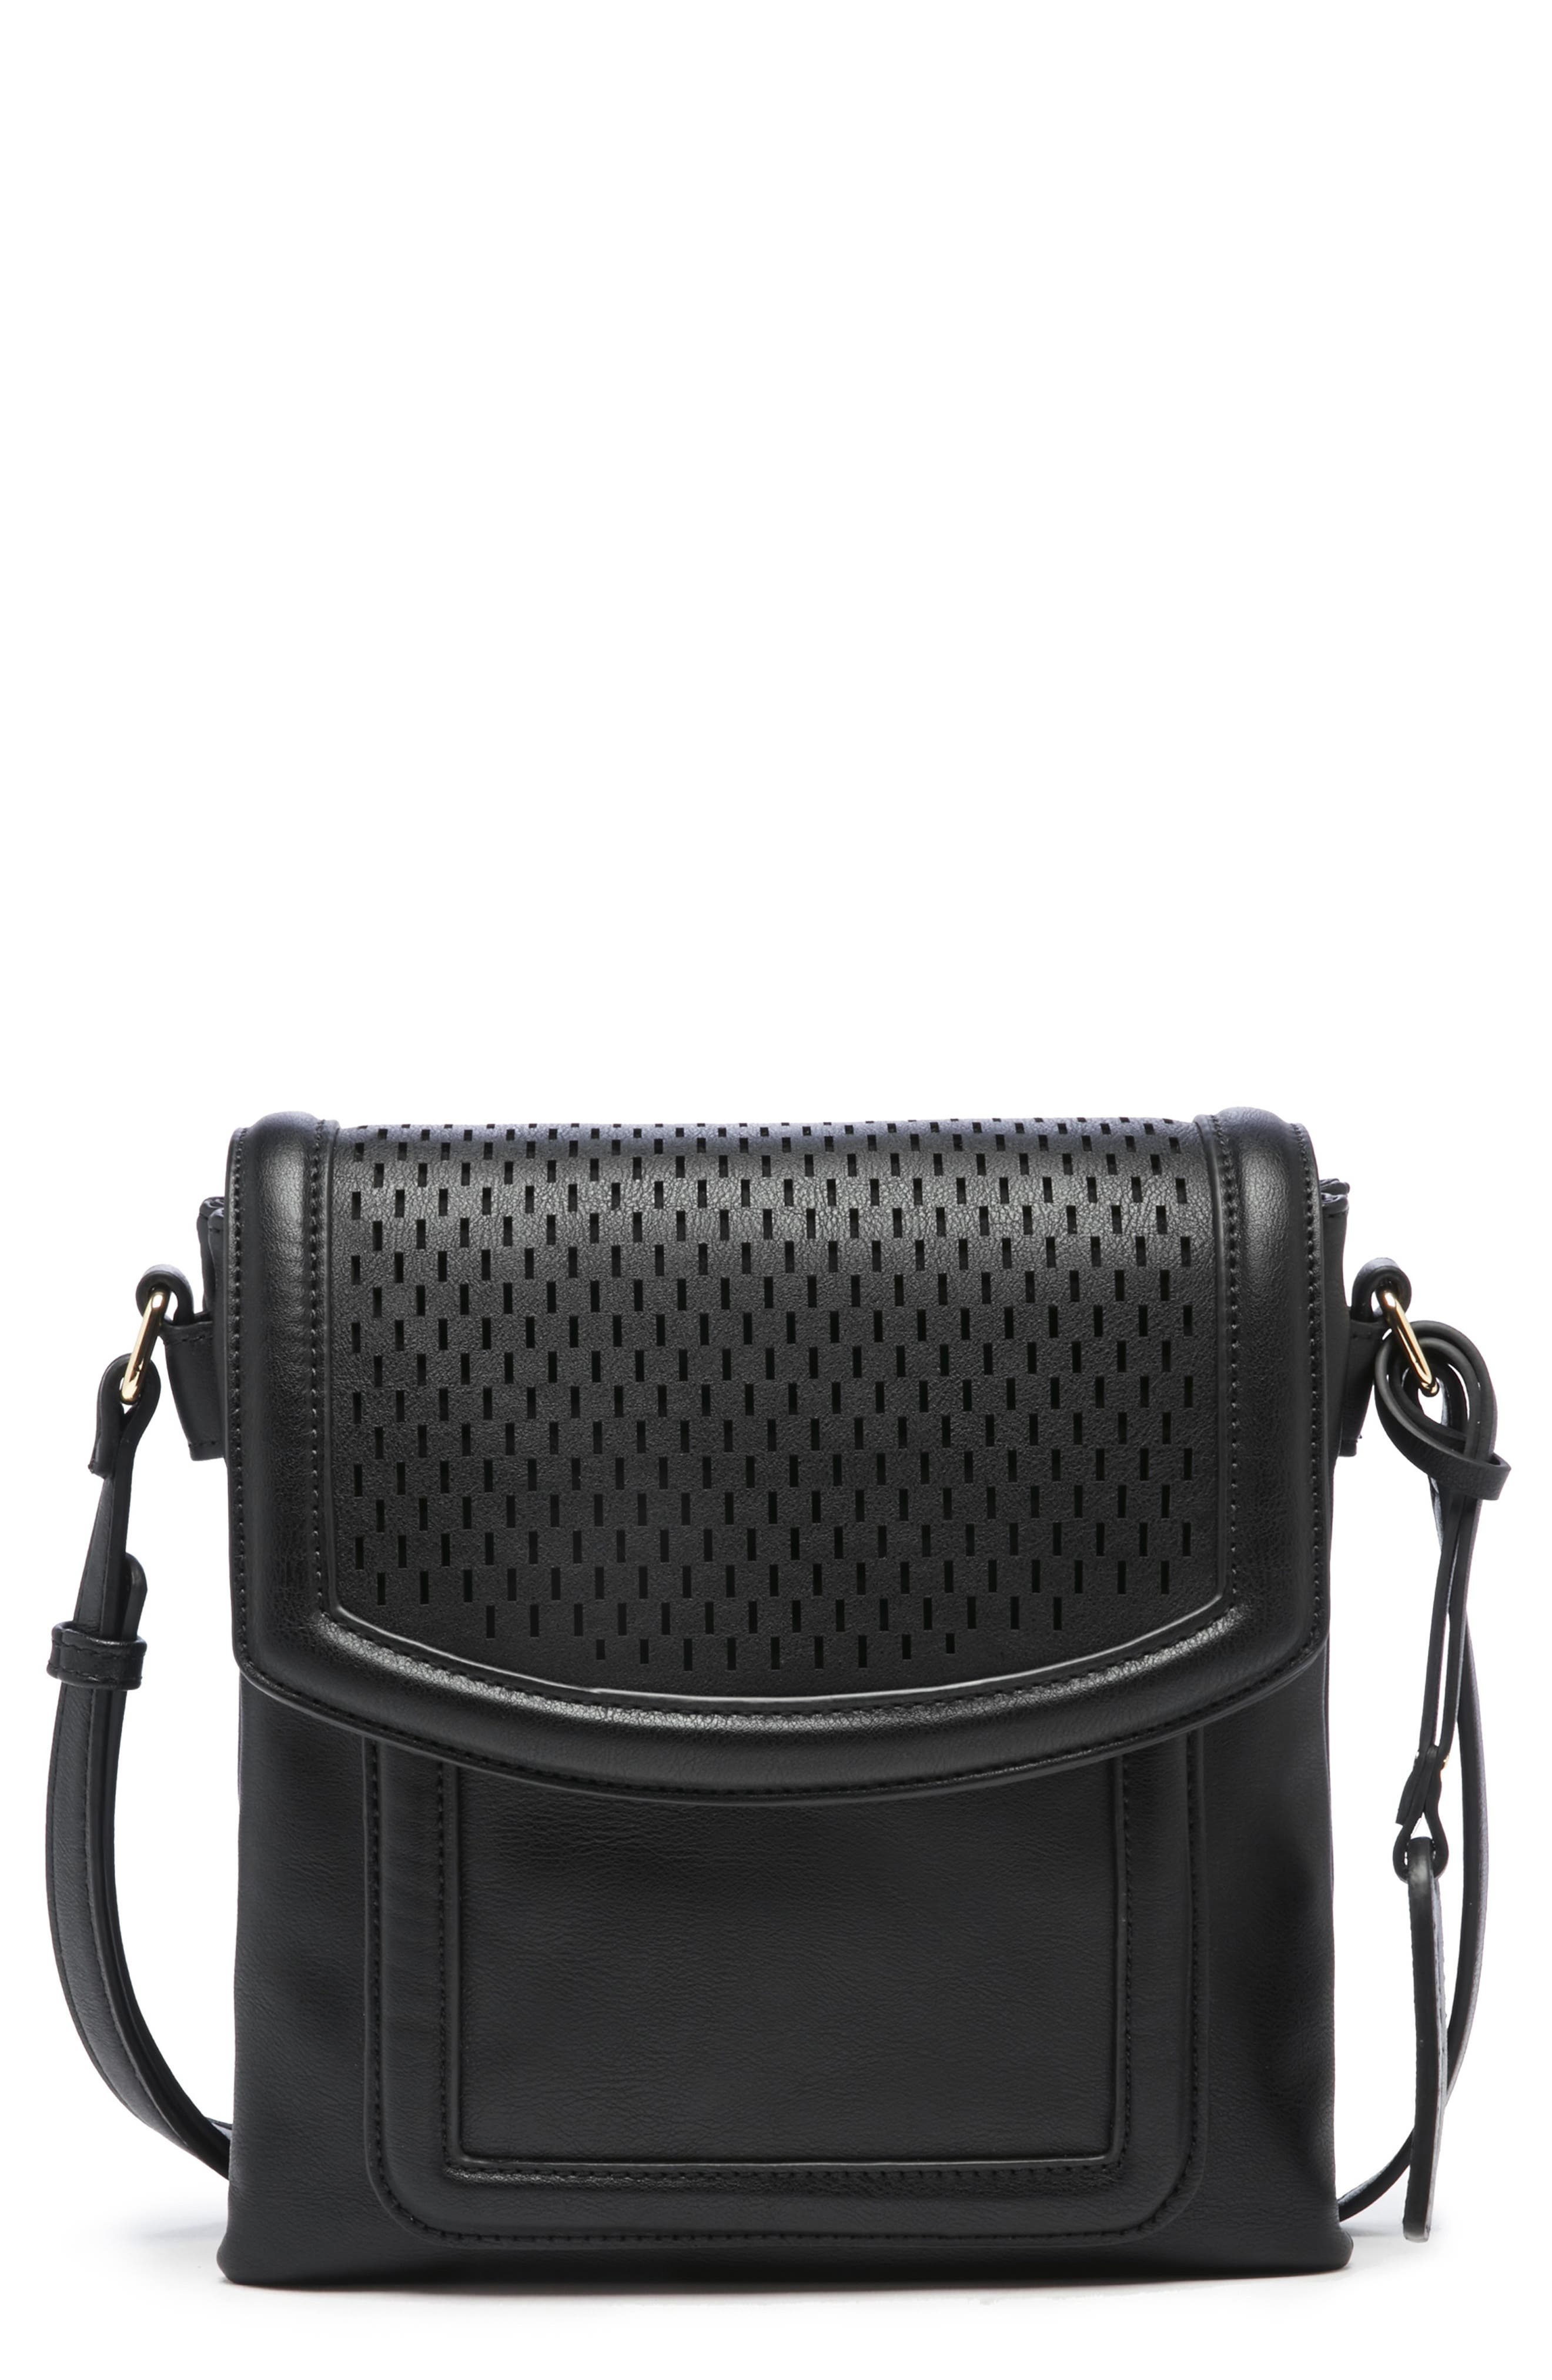 Daisa Faux Leather Crossbody Bag,                         Main,                         color, BLACK